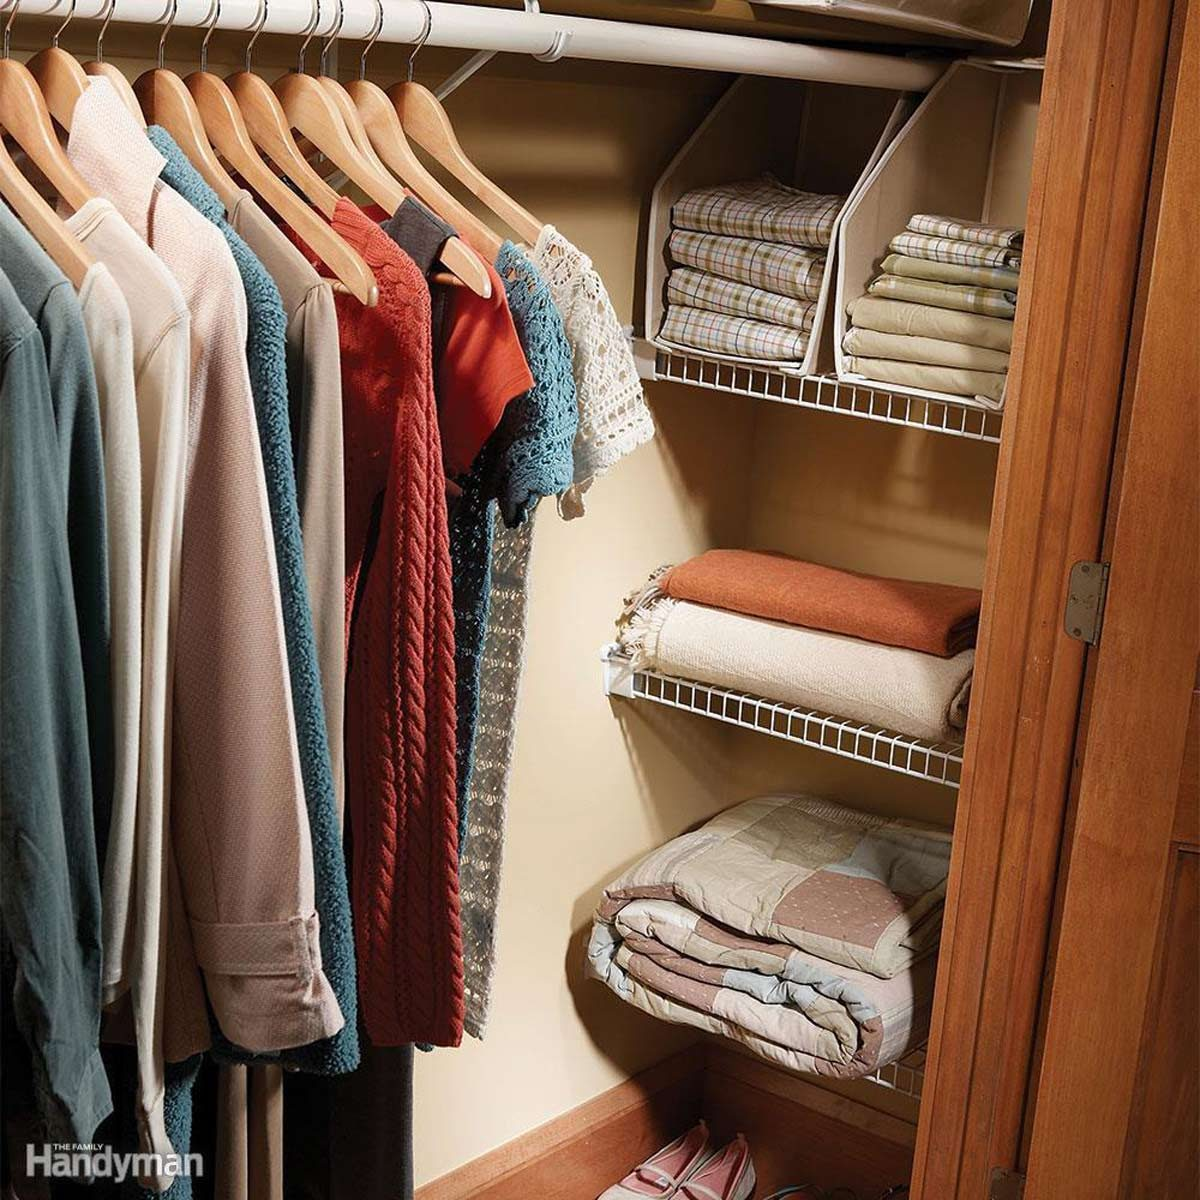 Switch to Warmer Bedding and Clothes